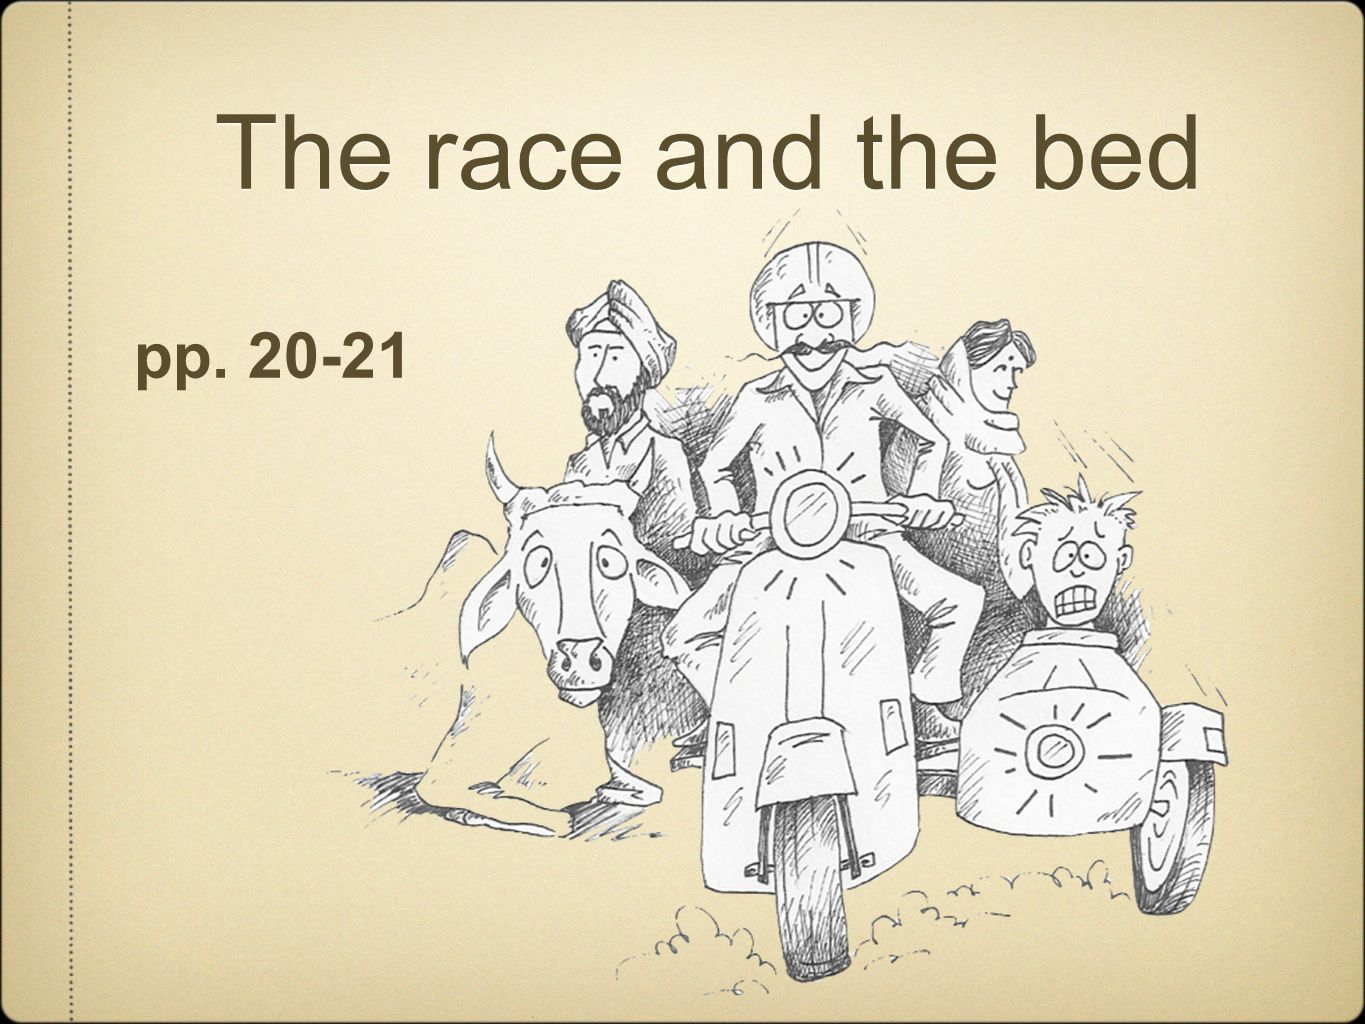 The race and the bed pp